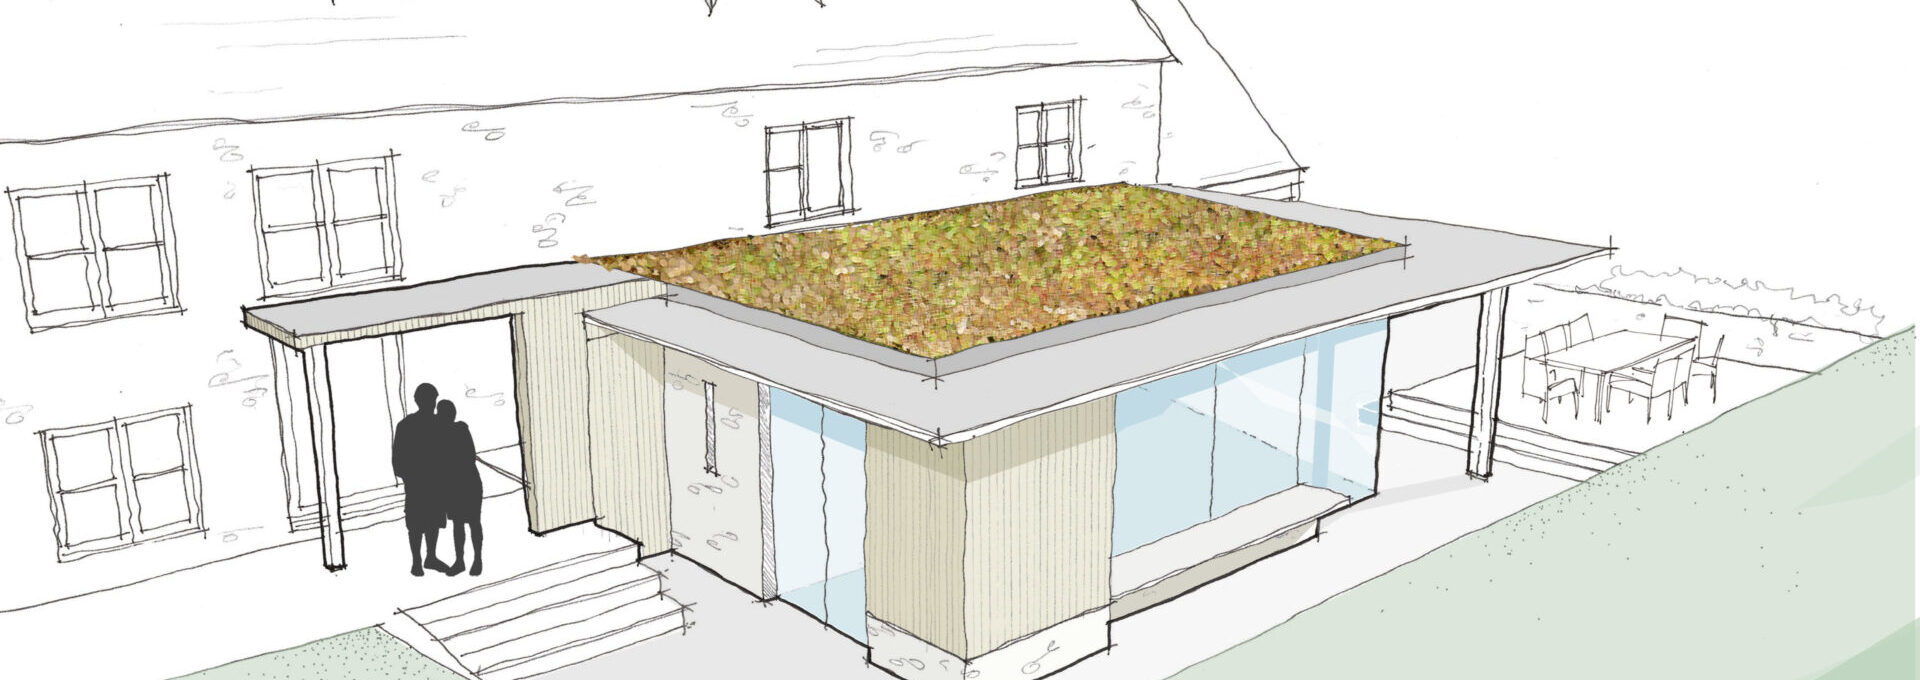 extension sketch with sedum roof